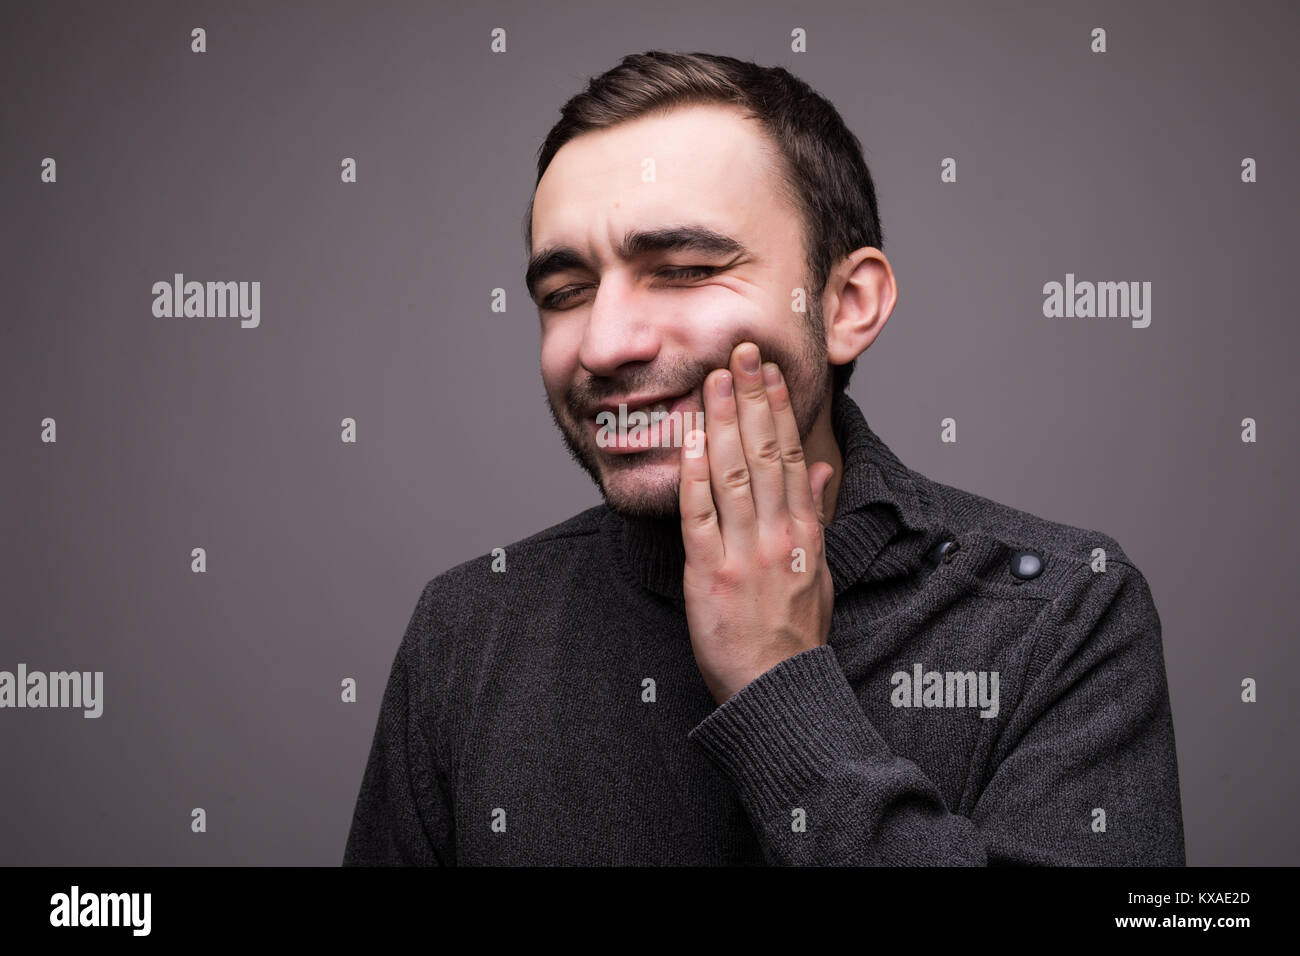 Closeup portrait of young man with tooth ache crown problem about to cry from pain touching outside mouth with hand, - Stock Image